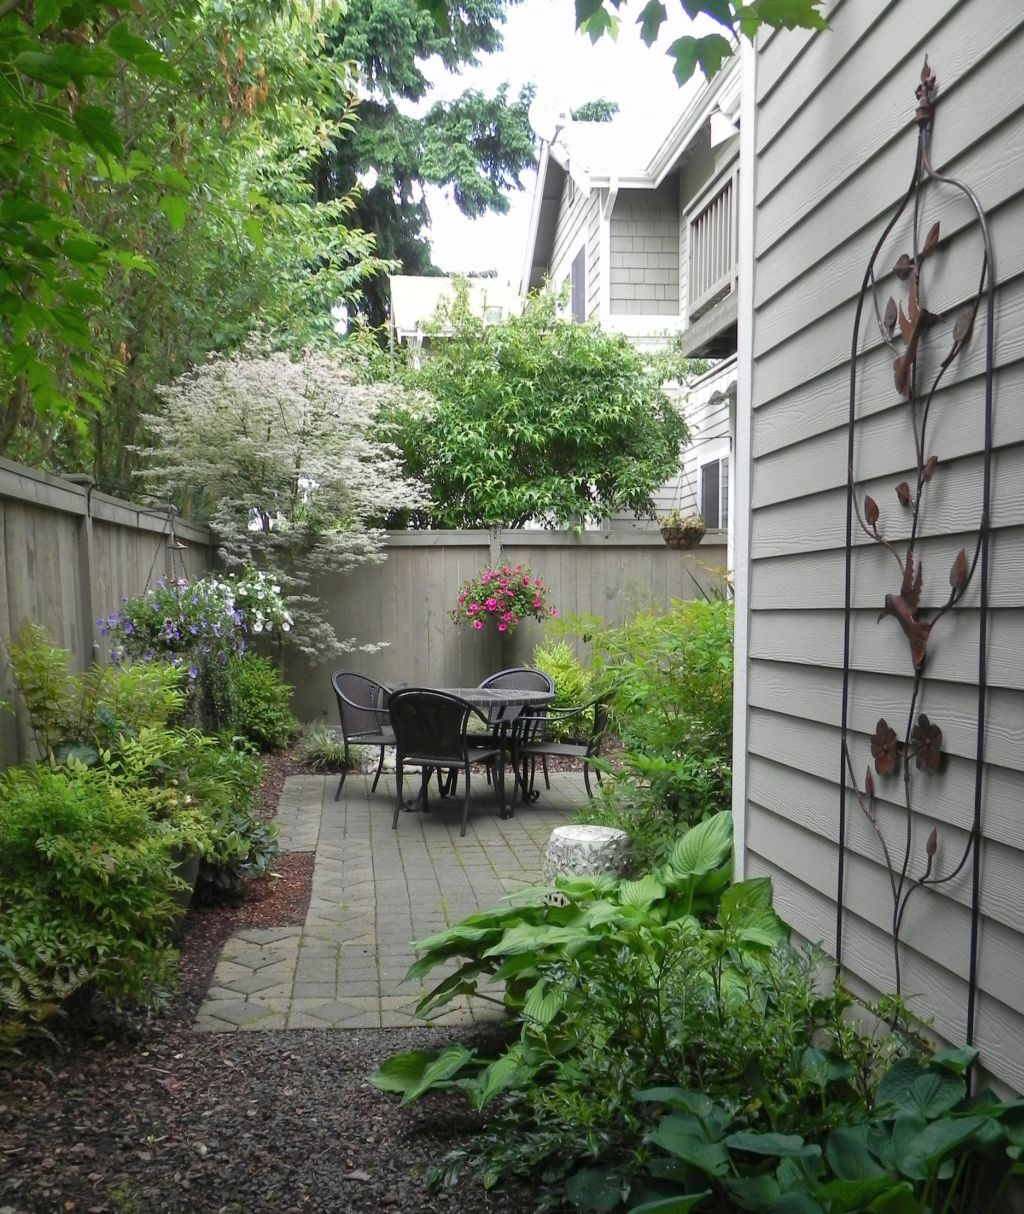 japanese garden designs for small spaces and side yards on Backyard Japanese Garden Design Ideas id=70651